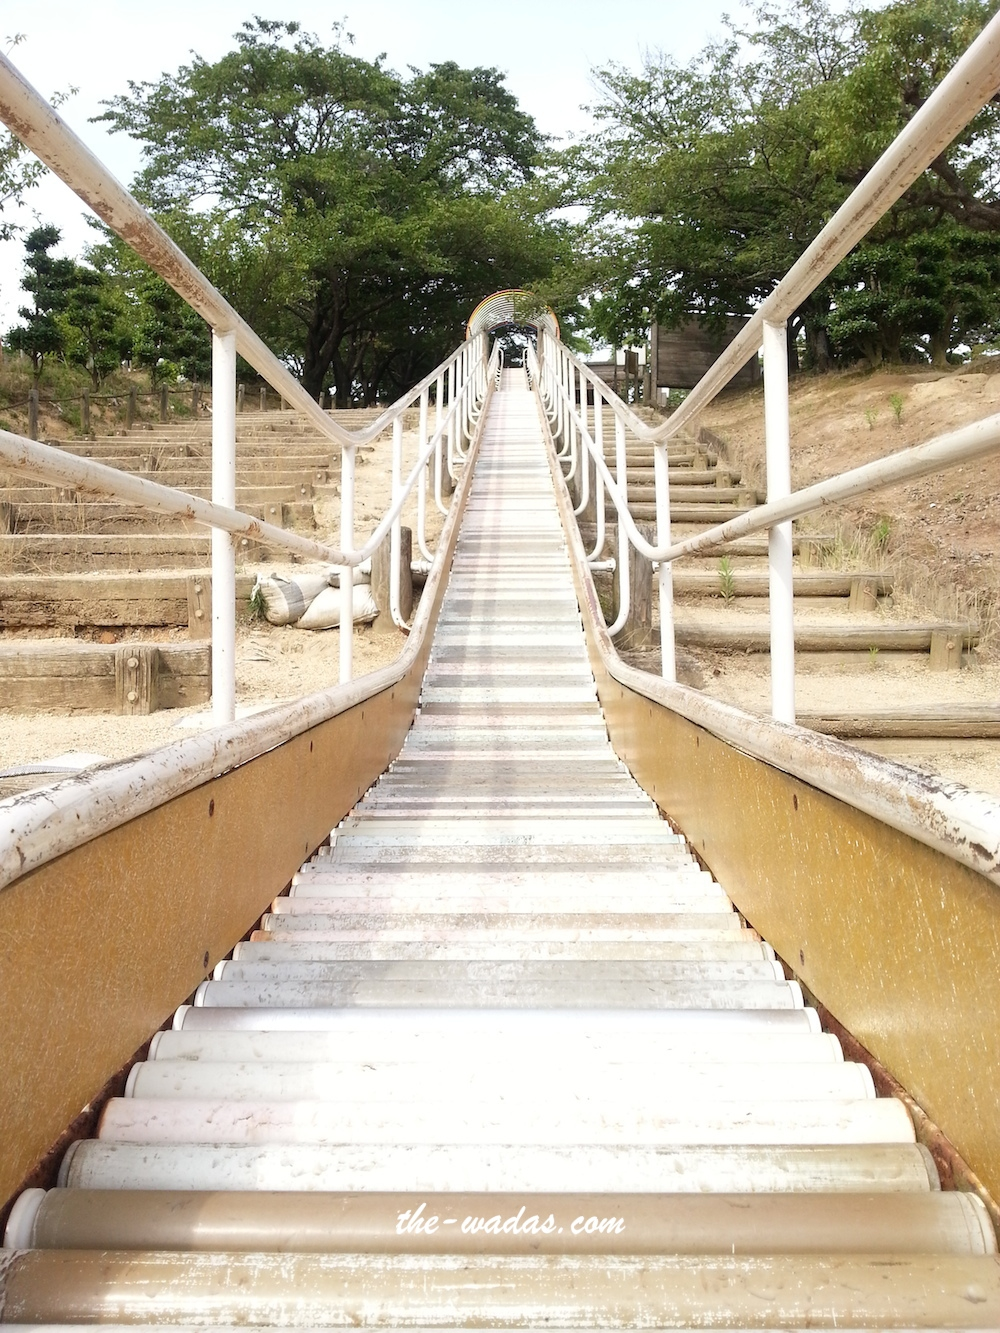 Tanematsuyama Park, Kurashiki City: Long slides